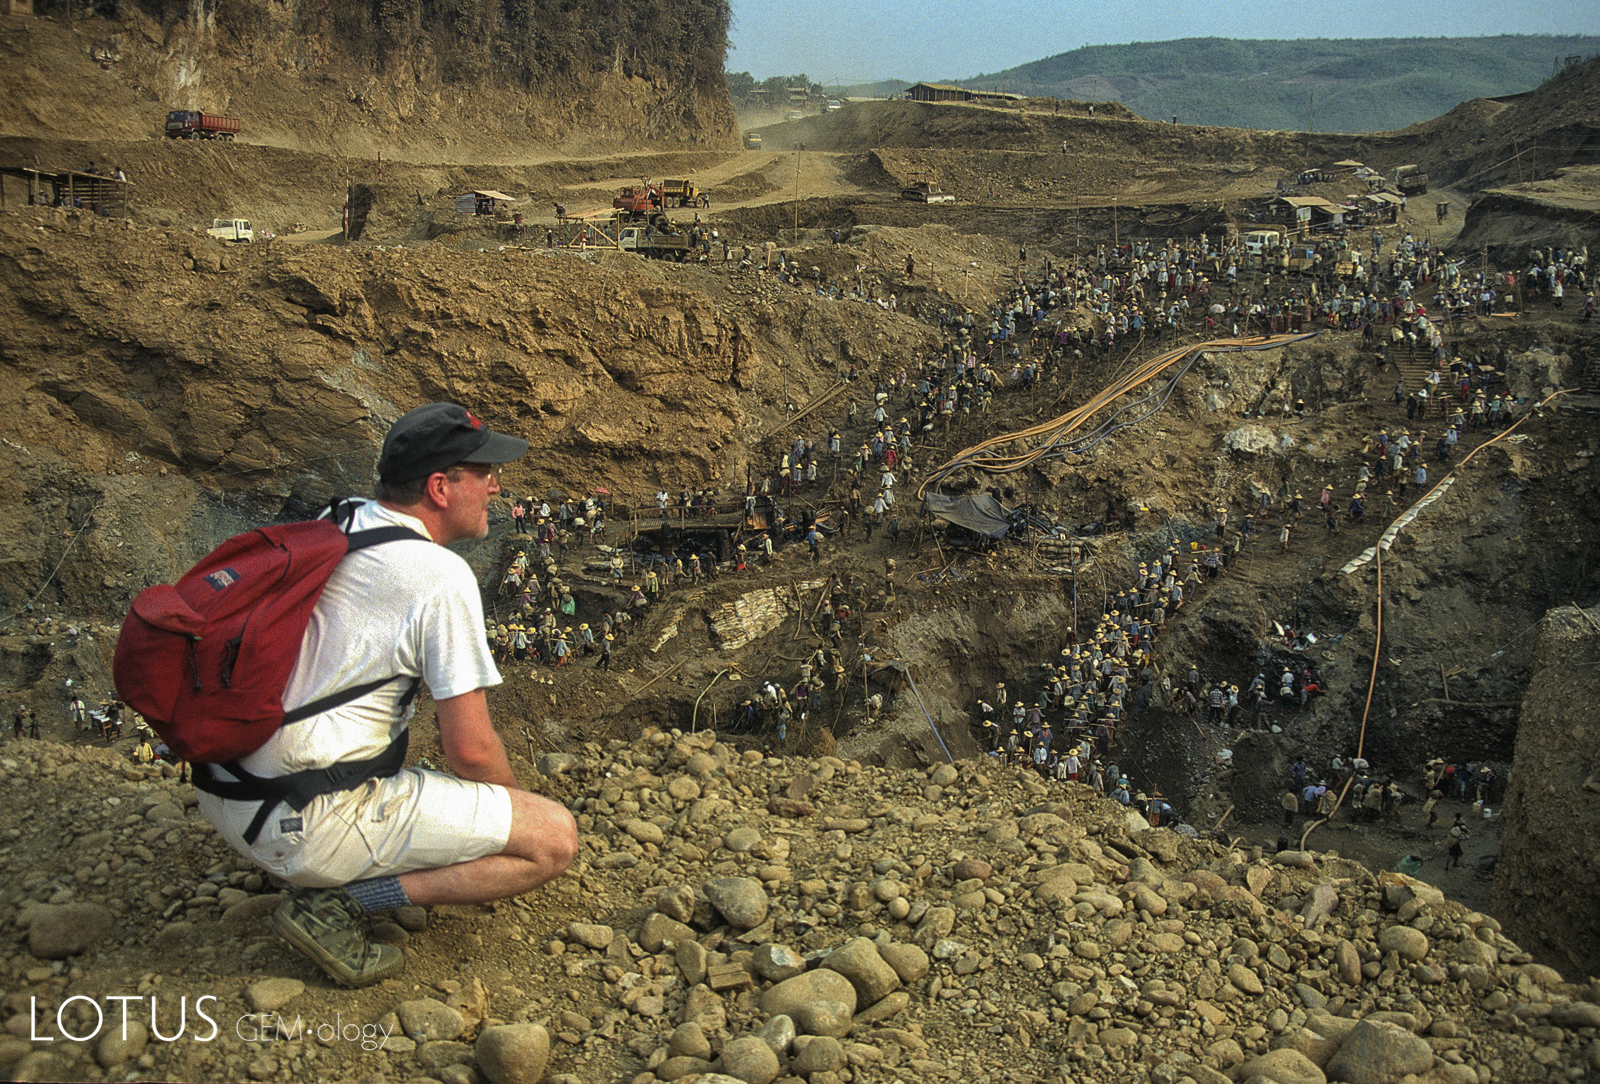 In 1997, I was back for more, this time in the dry season. Crossing a small hill from Hpakan, was a site that still leaves me stunned. Thousands of miners carry rock out of a huge hole. It was one of the most extraordinary sights I've ever seen in my life.